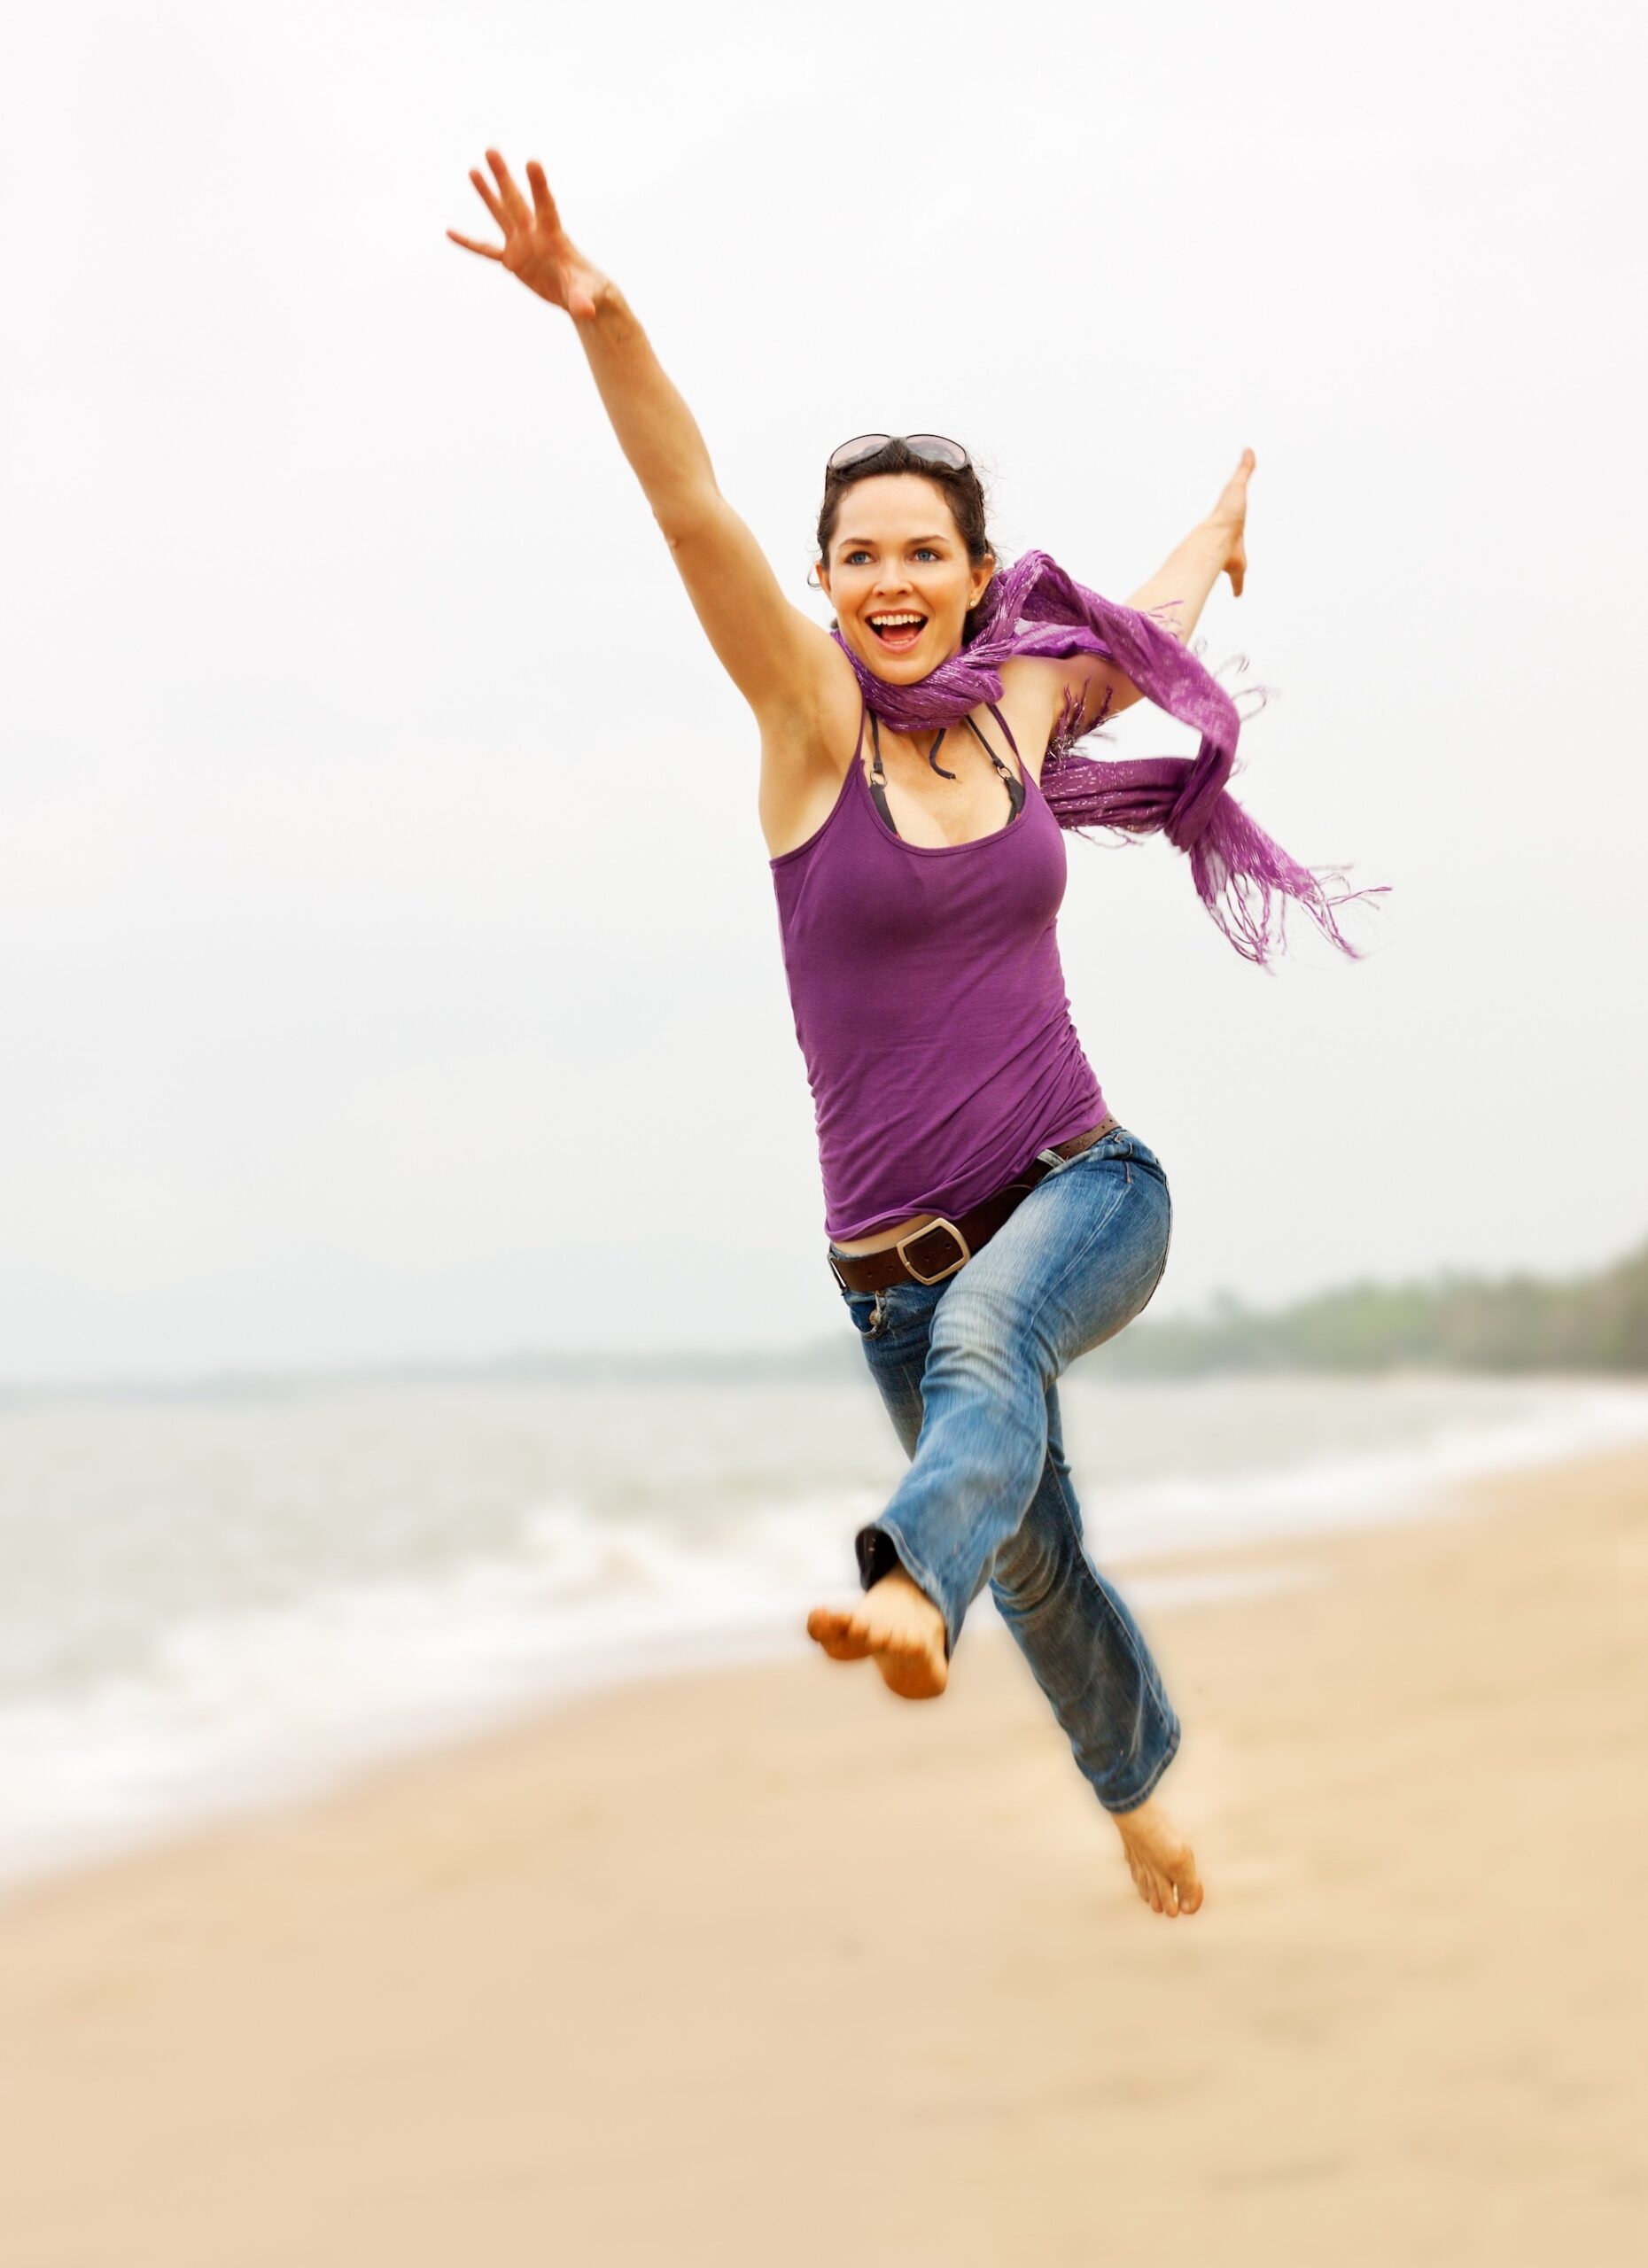 Woman running and leaping on beach